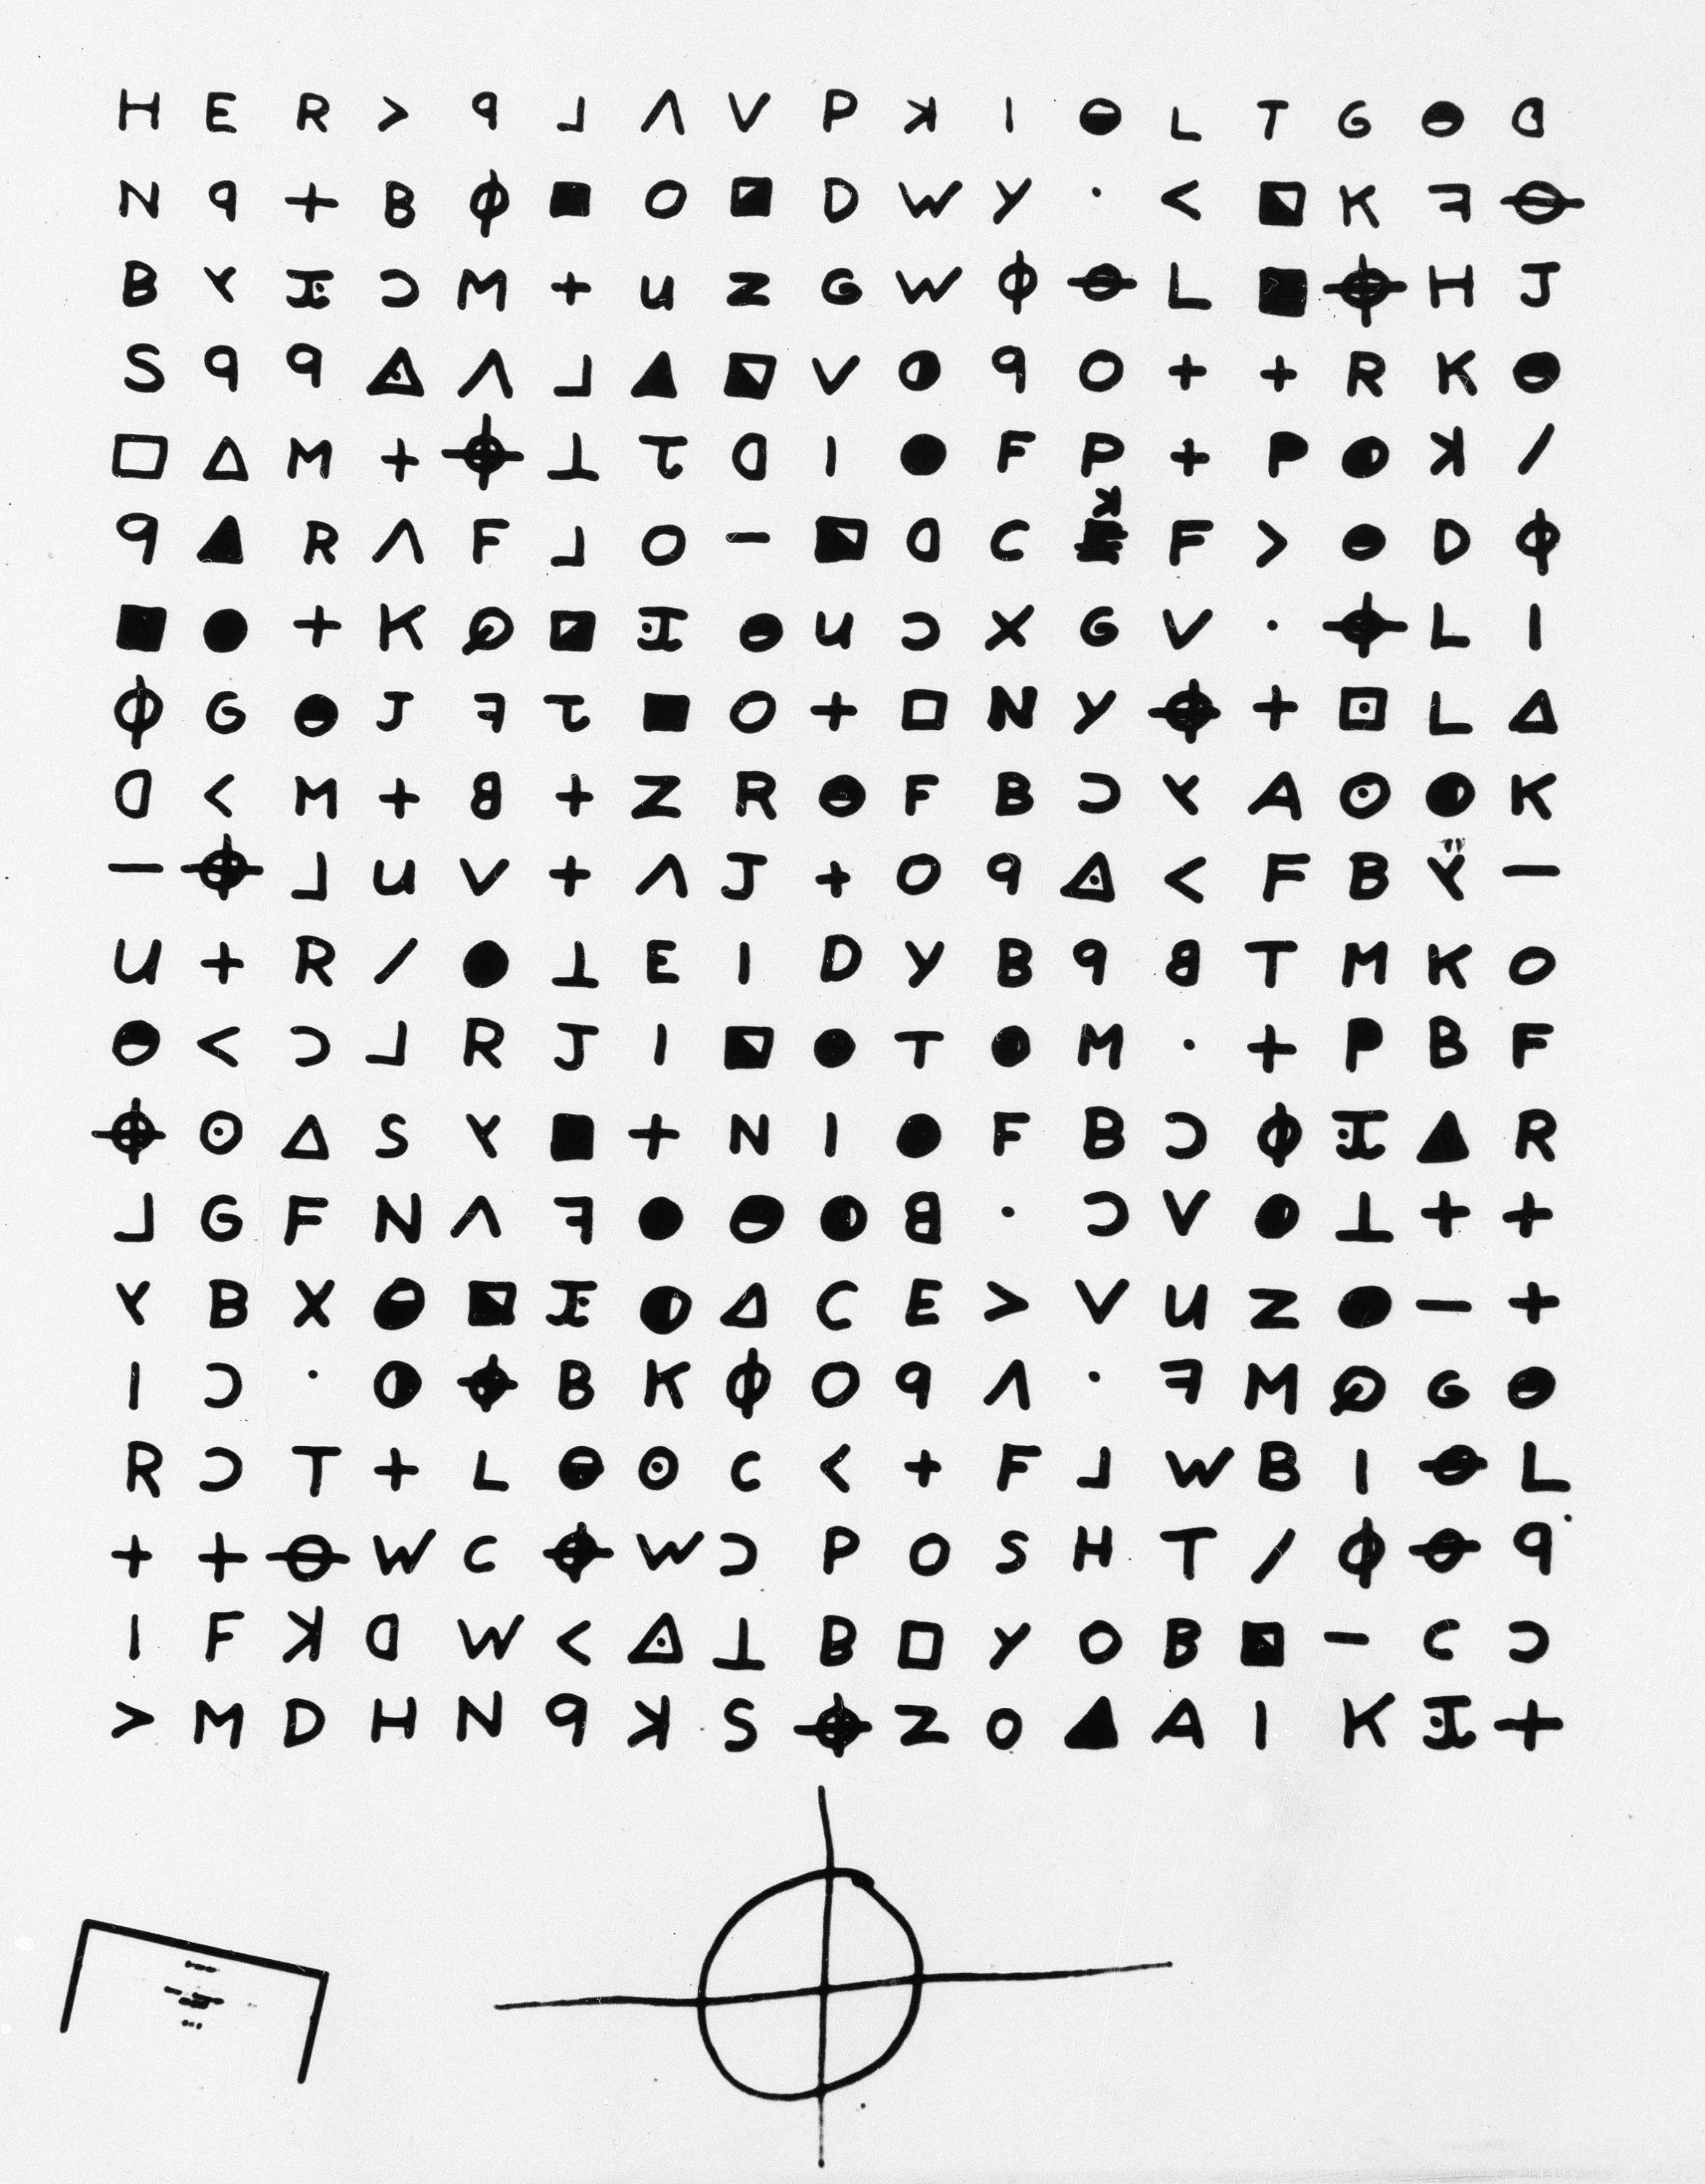 A copy of a cryptogram sent to the San Francisco Chronicle in 1969 by the Zodiac Killer. (San Francisco Chronicle via AP)